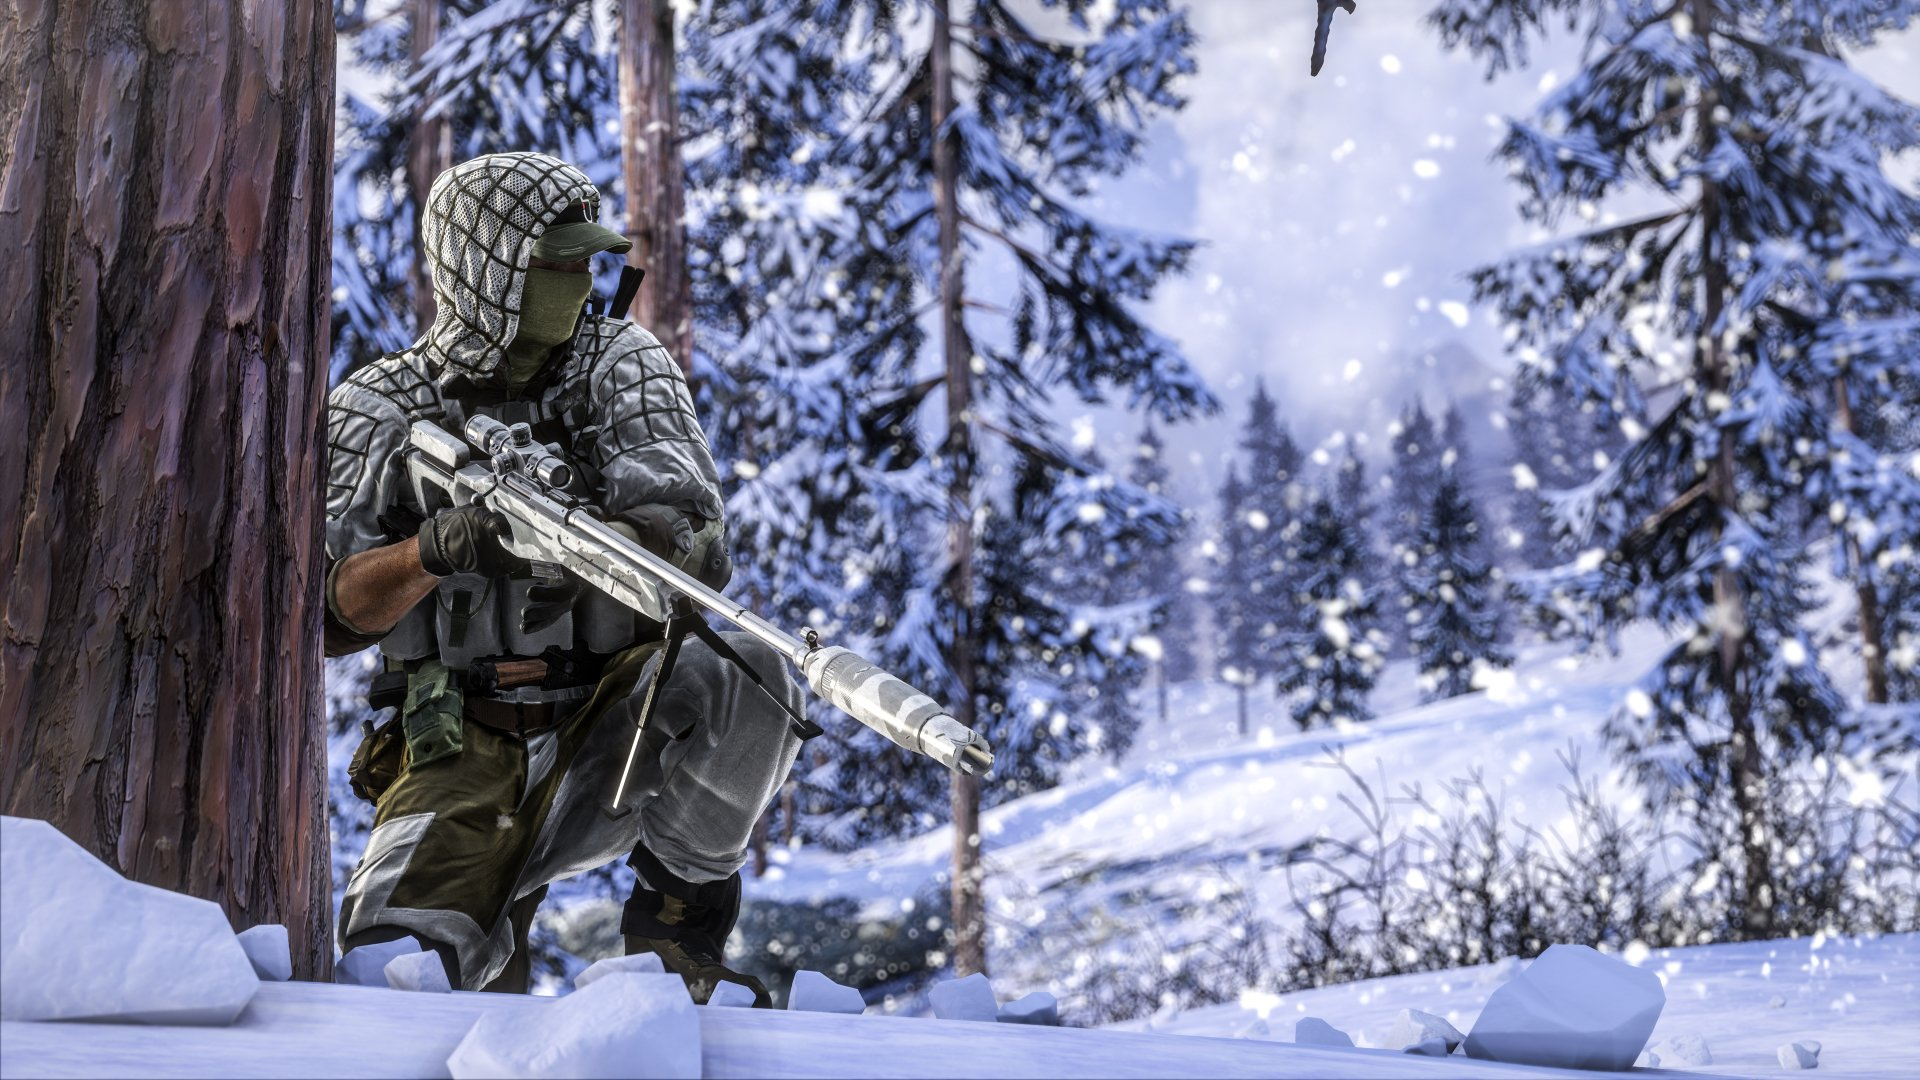 Video Game - Battlefield 4  Soldier Sniper Winter Forest Sniper Rifle Wallpaper